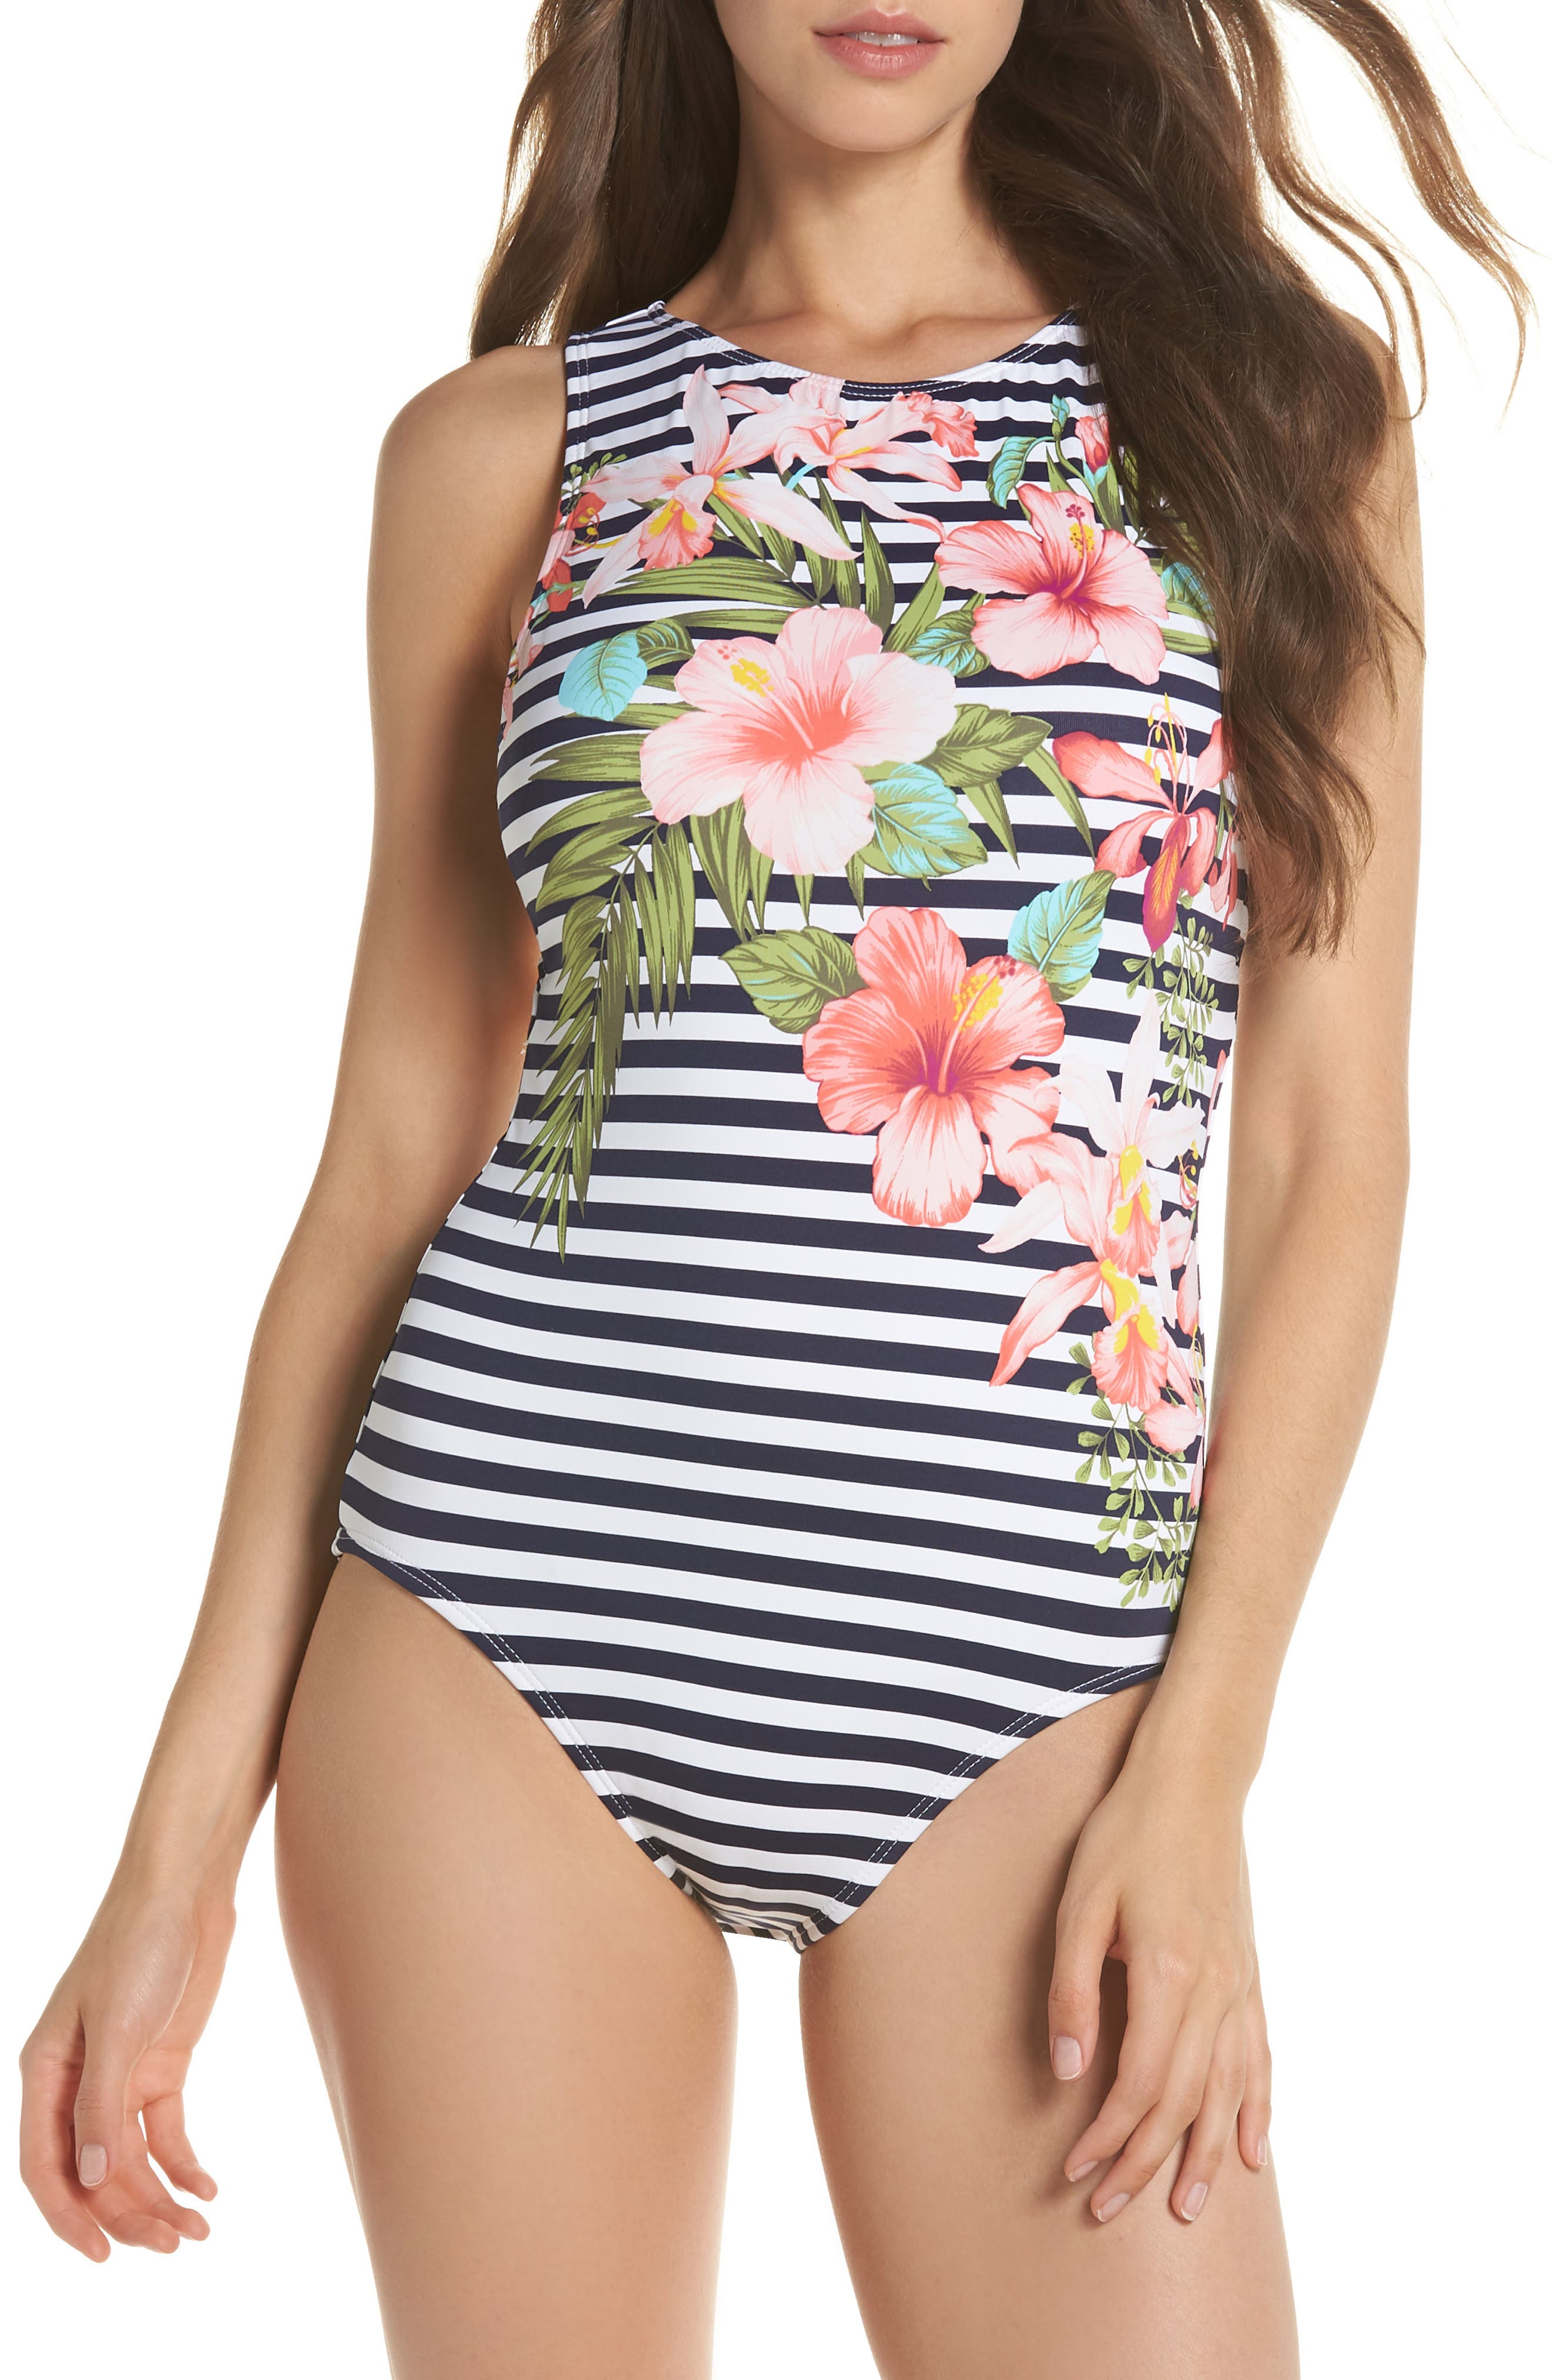 Tommy Bahama High Neck One-Piece Swimsuit, Green